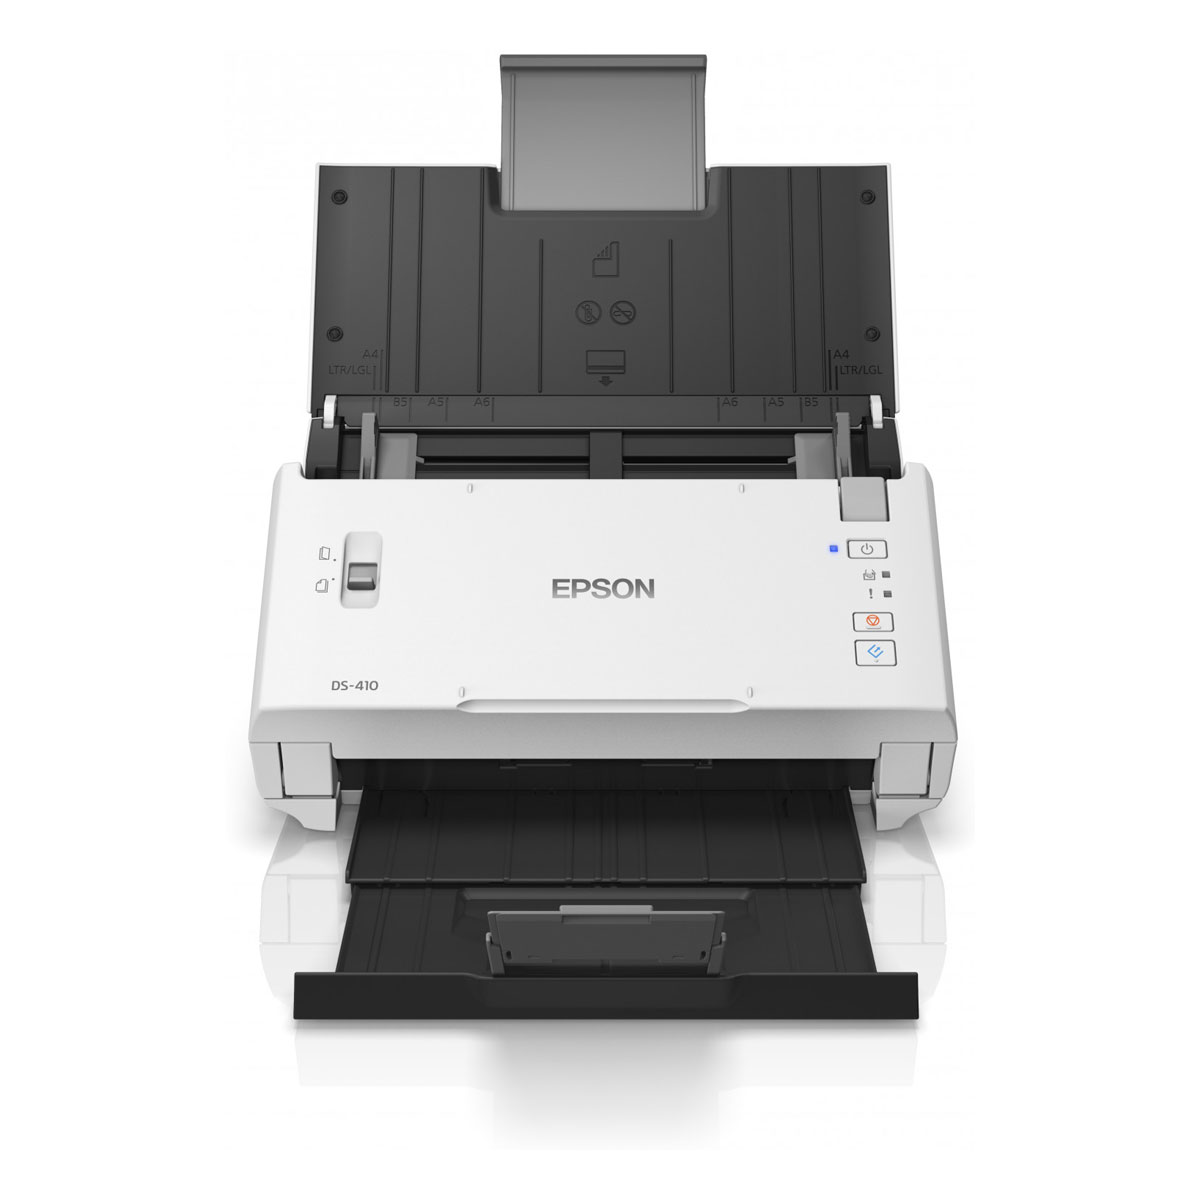 Epson WorkForce DS-410 - Scanner Epson - Cybertek.fr - 3